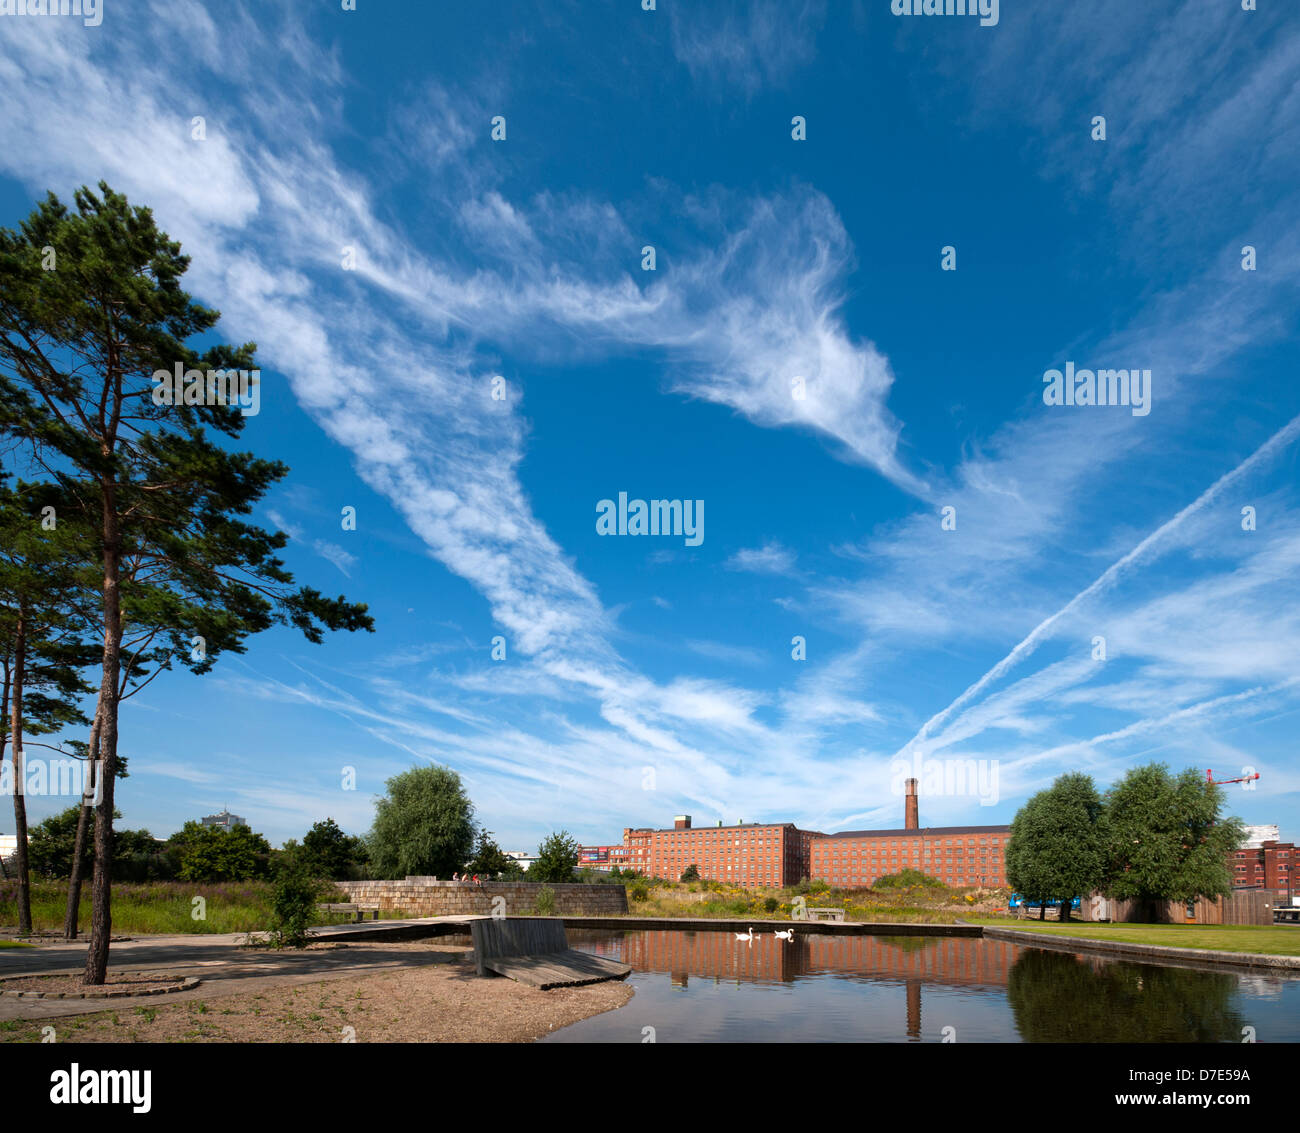 Cirrus clouds and former cotton mills reflected in the Cotton Field Park marina, New Islington, Ancoats, Manchester, Stock Photo